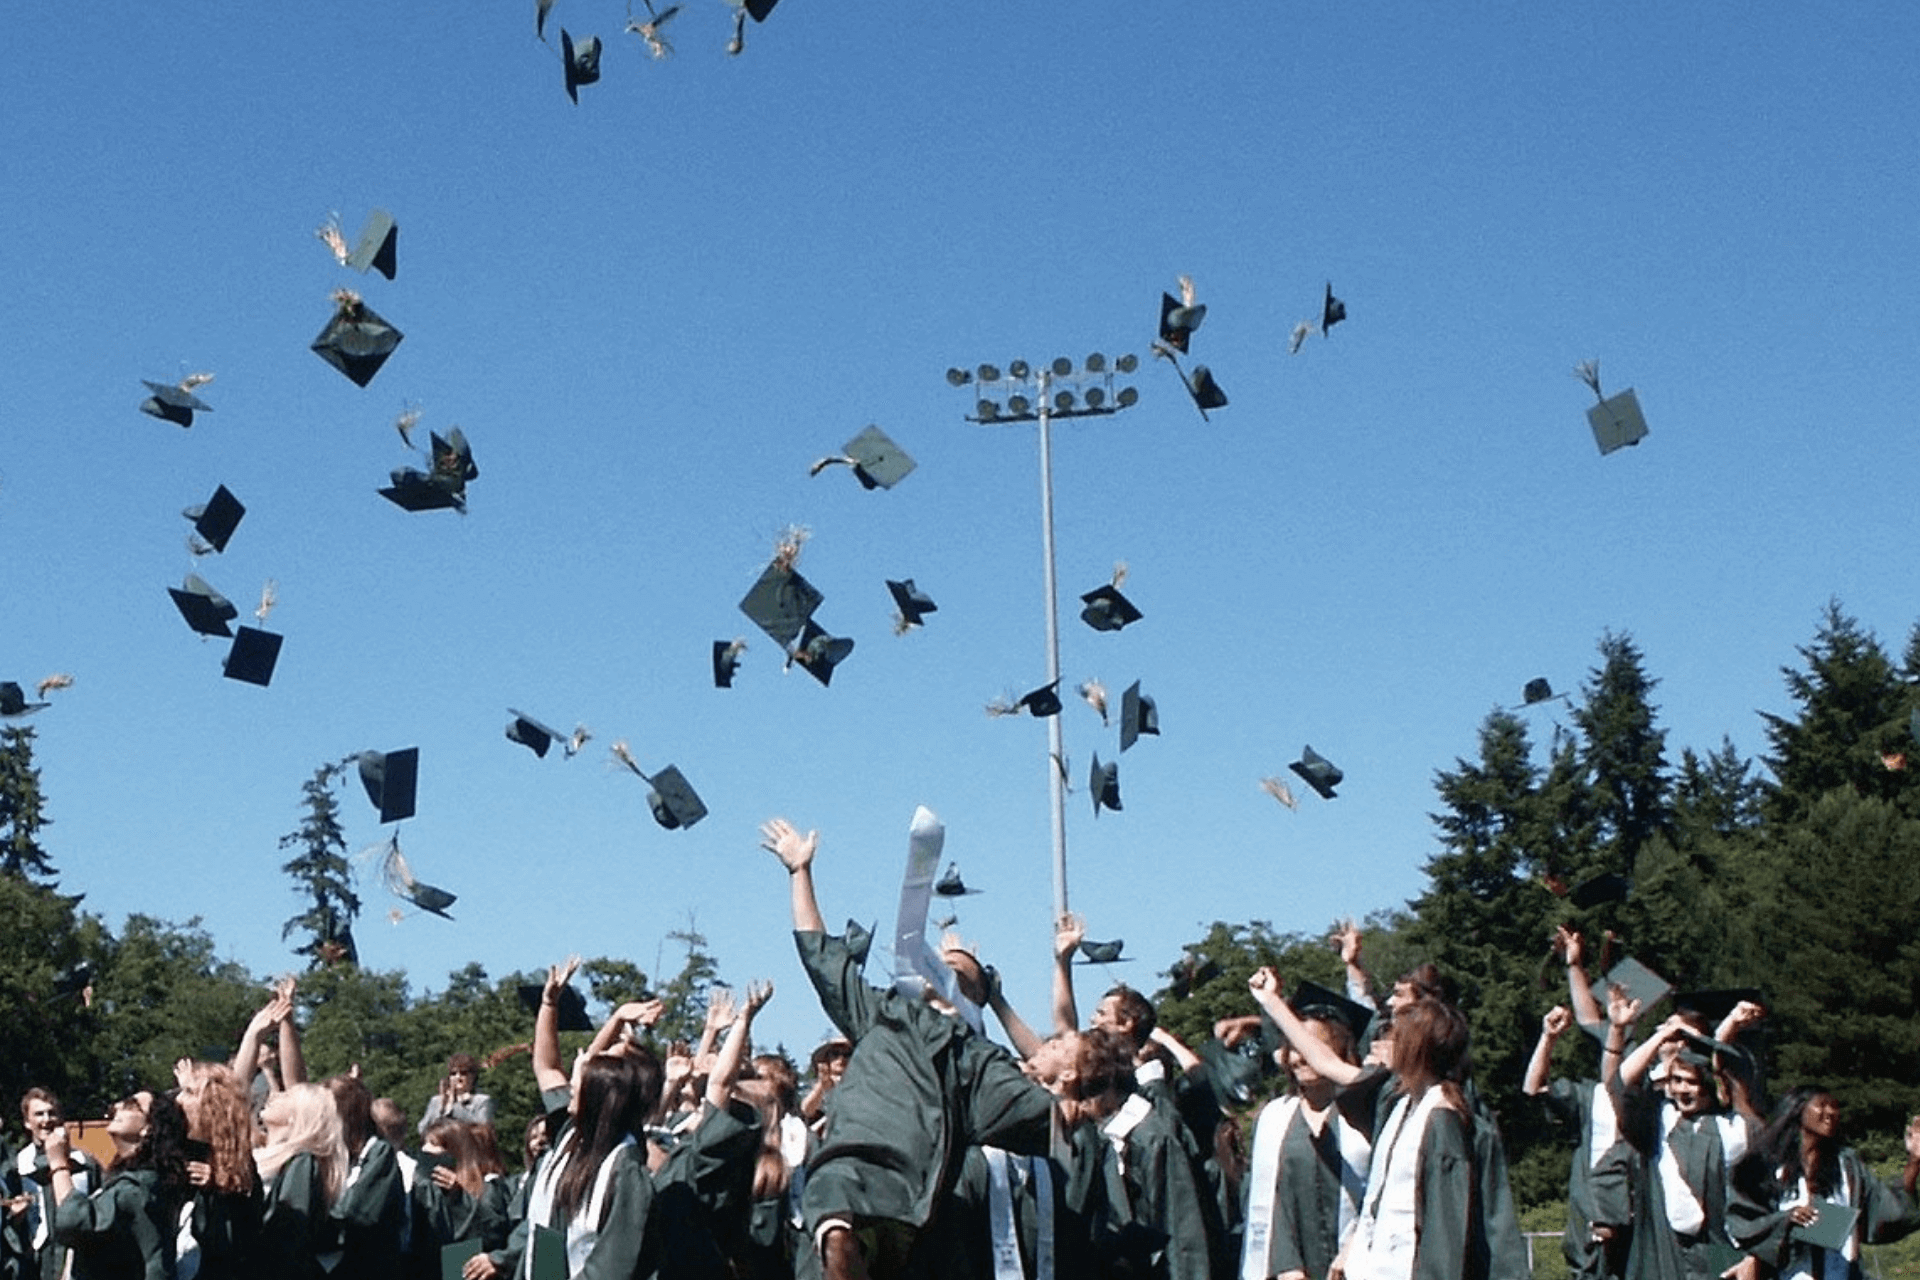 This image portrays students at a graduation ceremony and fits the article about website optimization for educational institutions